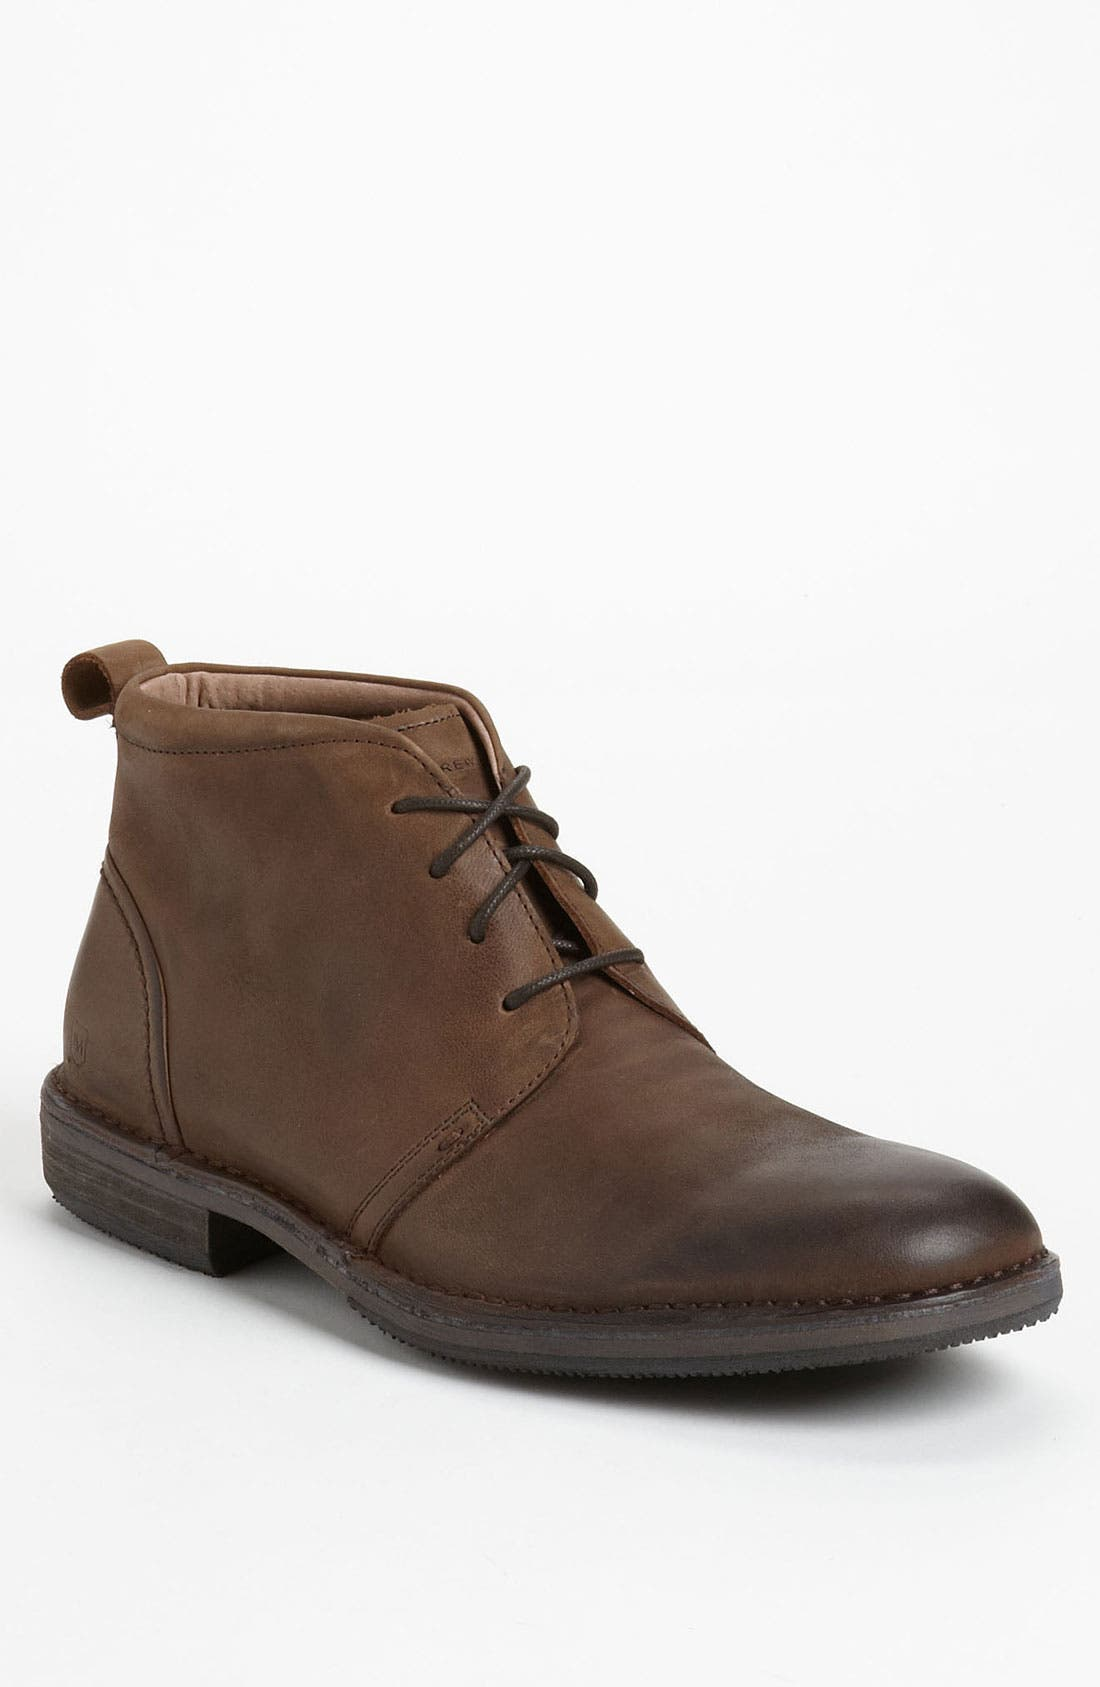 Alternate Image 1 Selected - Andrew Marc 'Greenwich' Chukka Boot (Men)